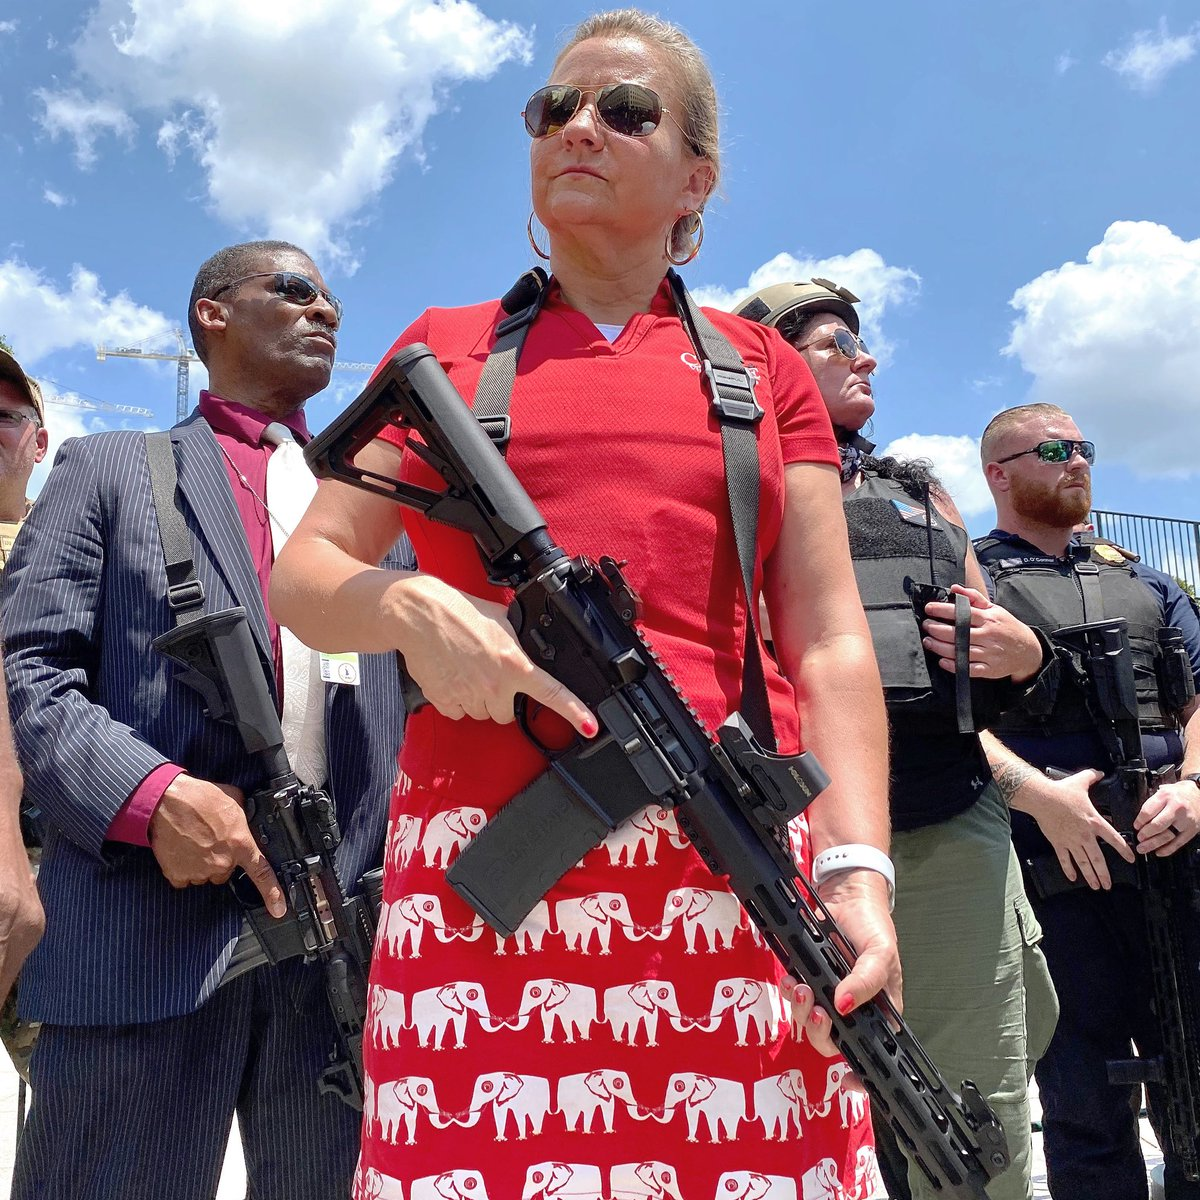 Gubernatorial candidate and State Sen. Amanda Chase (R) was a featured speaker at yesterday's 2nd Amendment Rally at the Virginia State Capitol. Photo by Scott Elmquist.